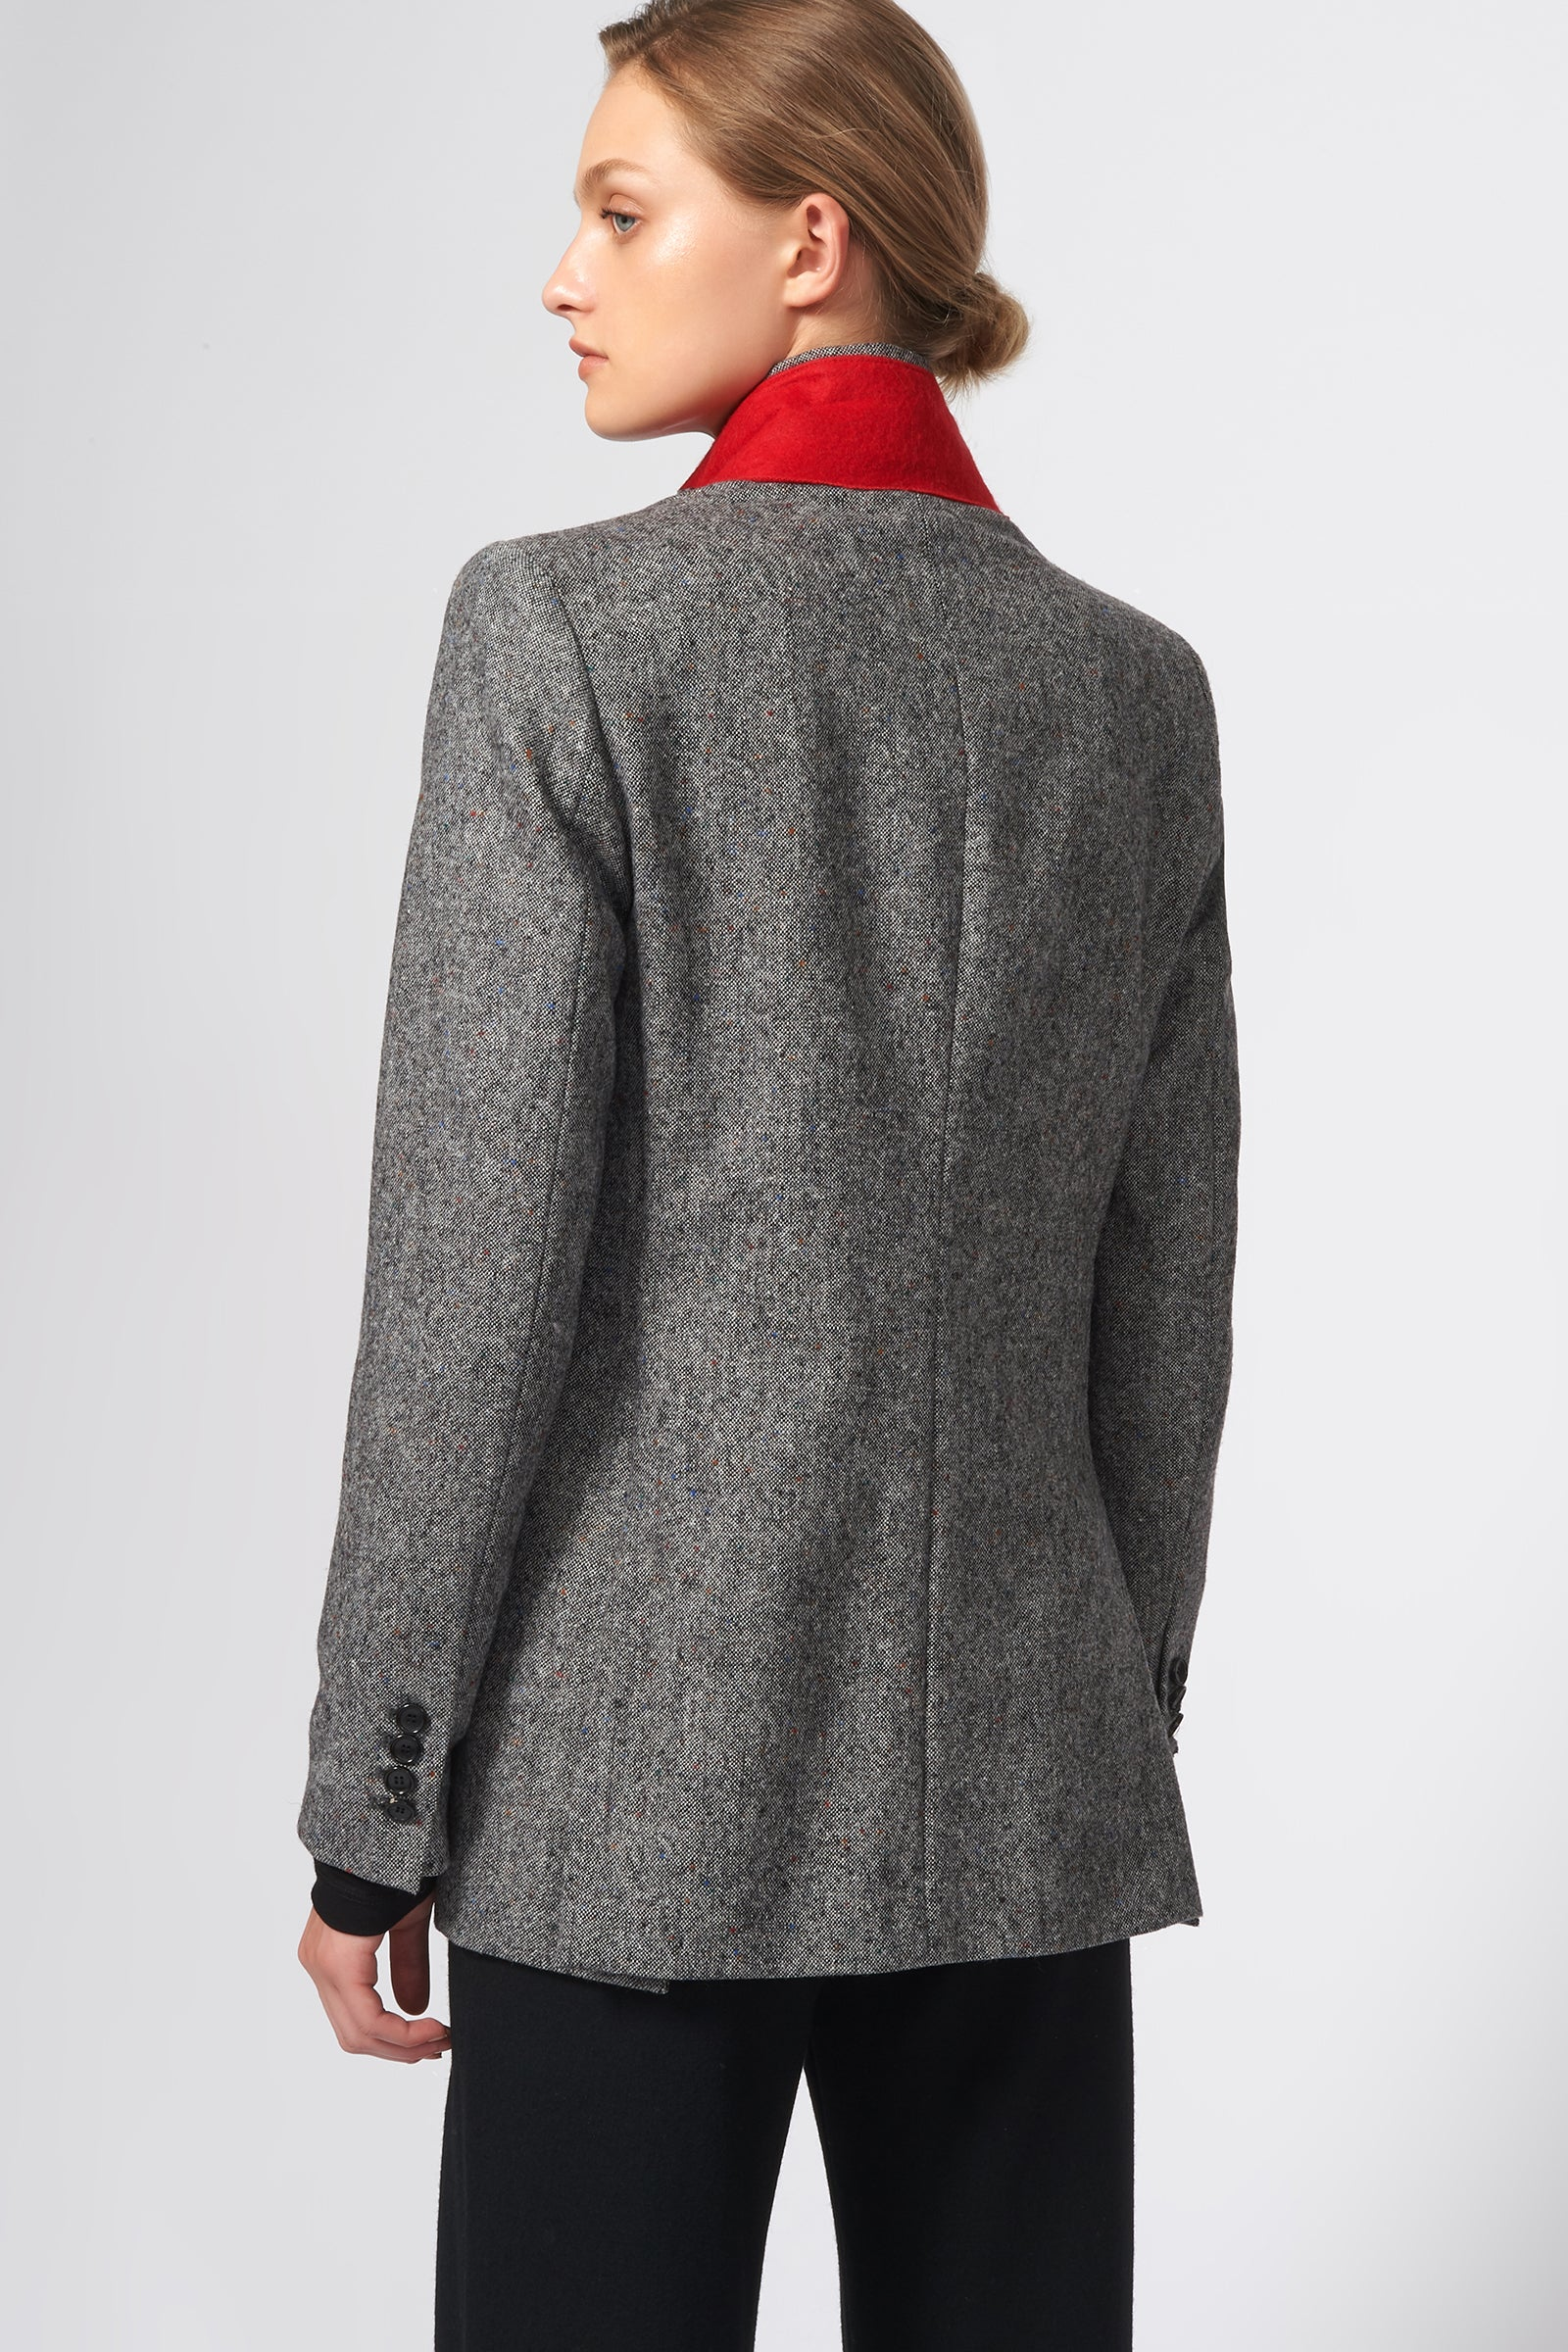 Kal Rieman Classic Notch Blazer in Grey Tweed on Model Back View